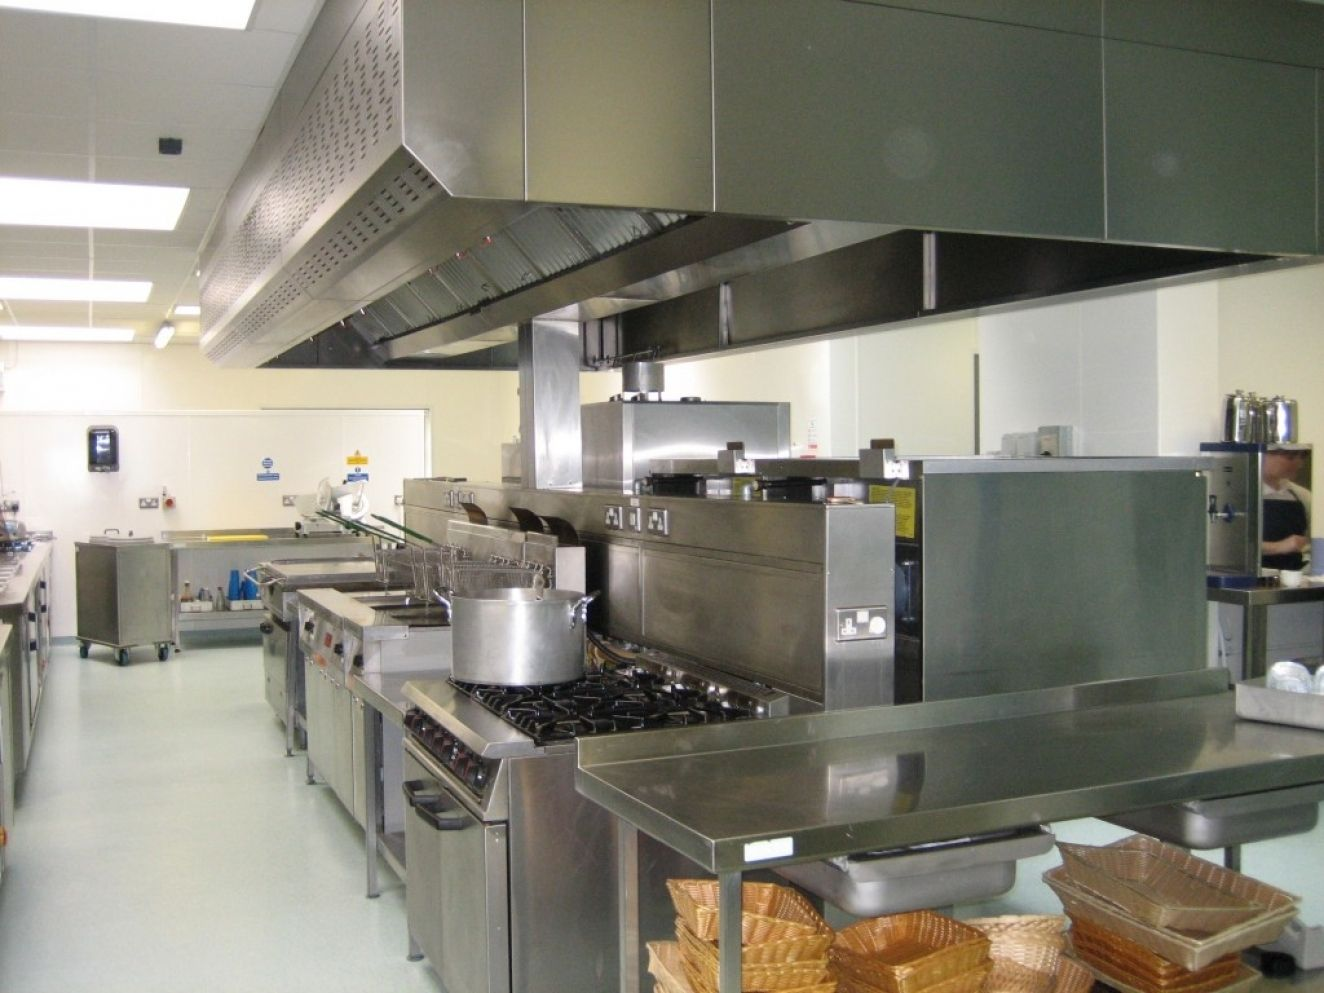 Small Commercial Kitchen Design  Small Kitchen Ideas On A Budget Mesmerizing Kitchen Design Low Budget Decorating Design